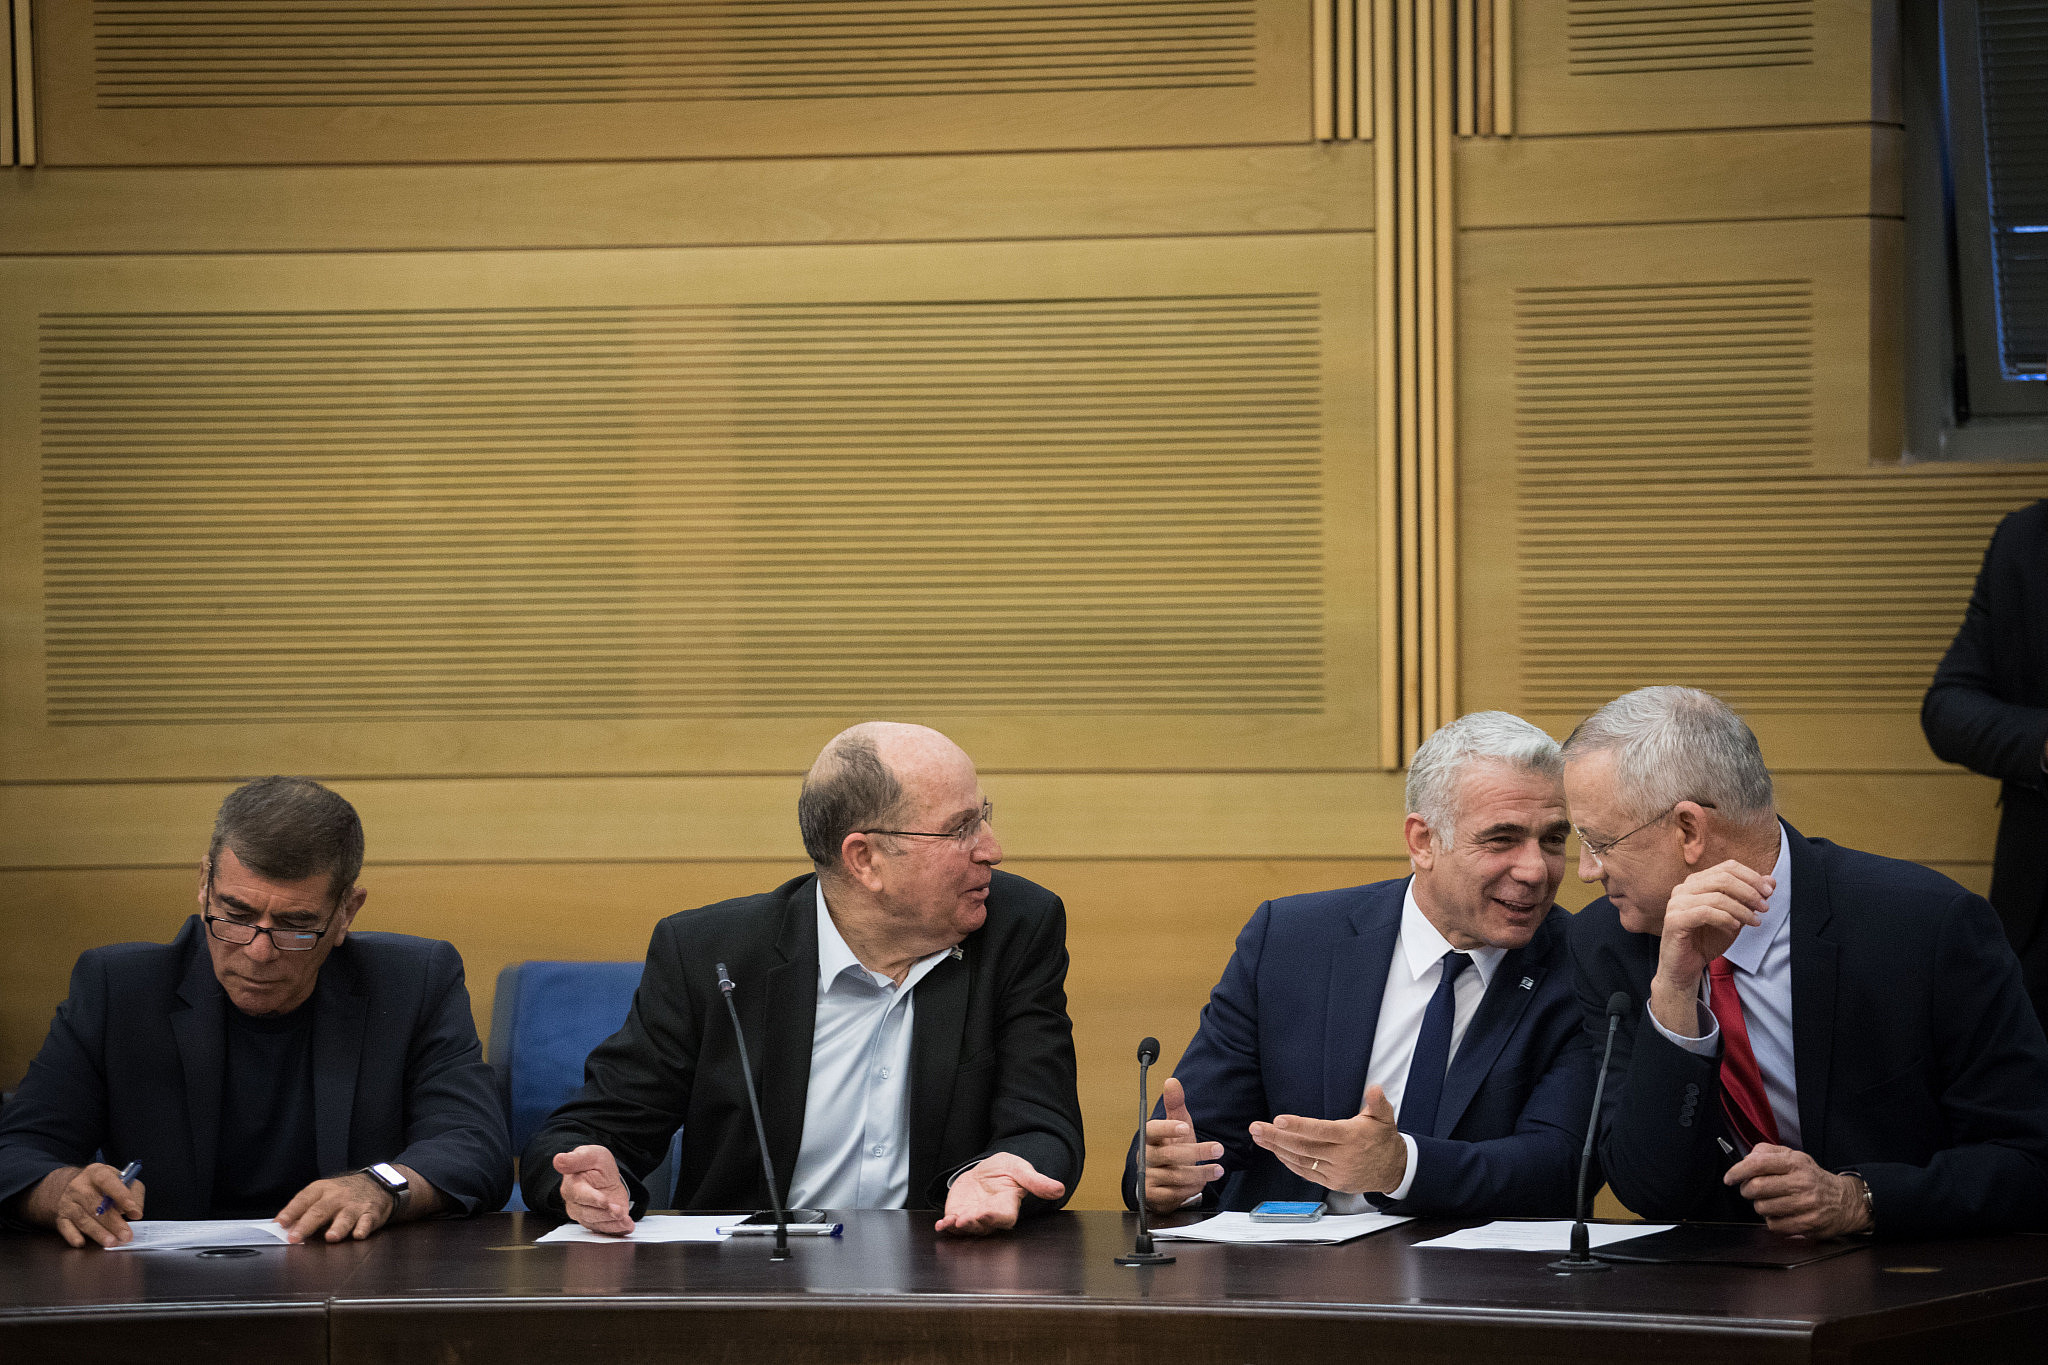 Benny Gantz, Yair Lapid, Moshe Yaalon and Gaby Ashkenazi of the Blue and White party, during a faction meeting at the Knesset in Jerusalem, on December 9, 2019. (Hadas Parush/Flash90)